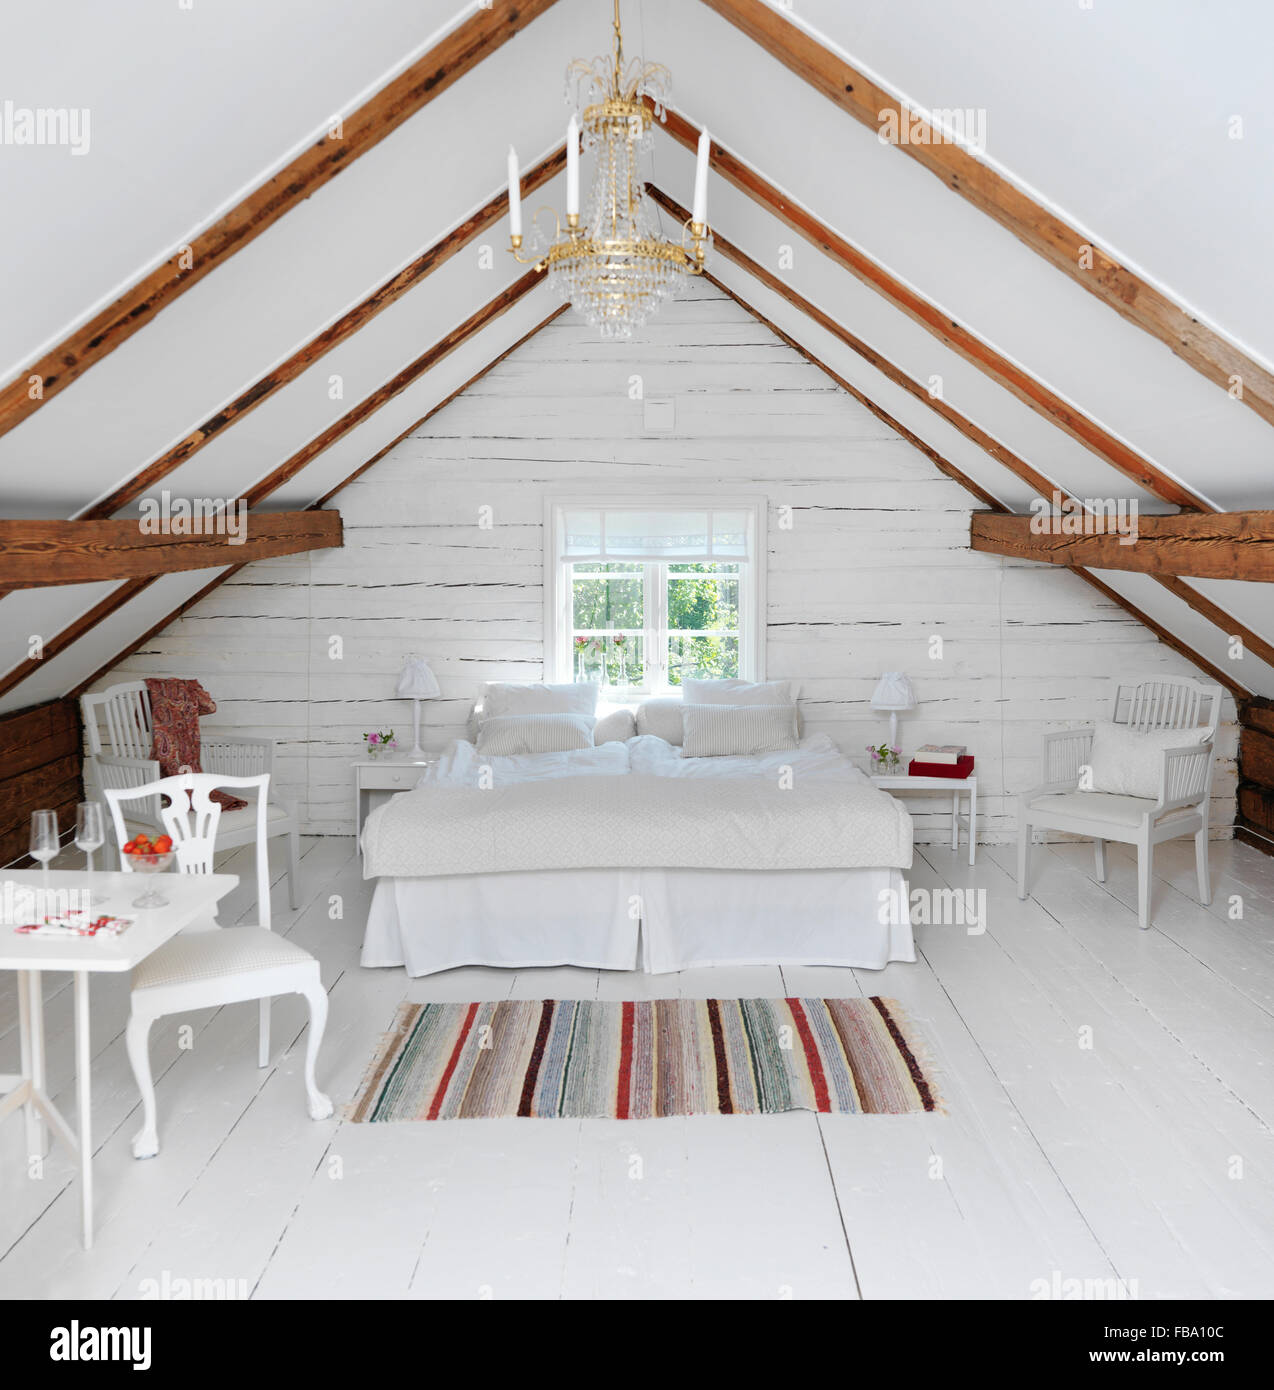 Sweden, Attic bedroom in rustic style - Stock Image